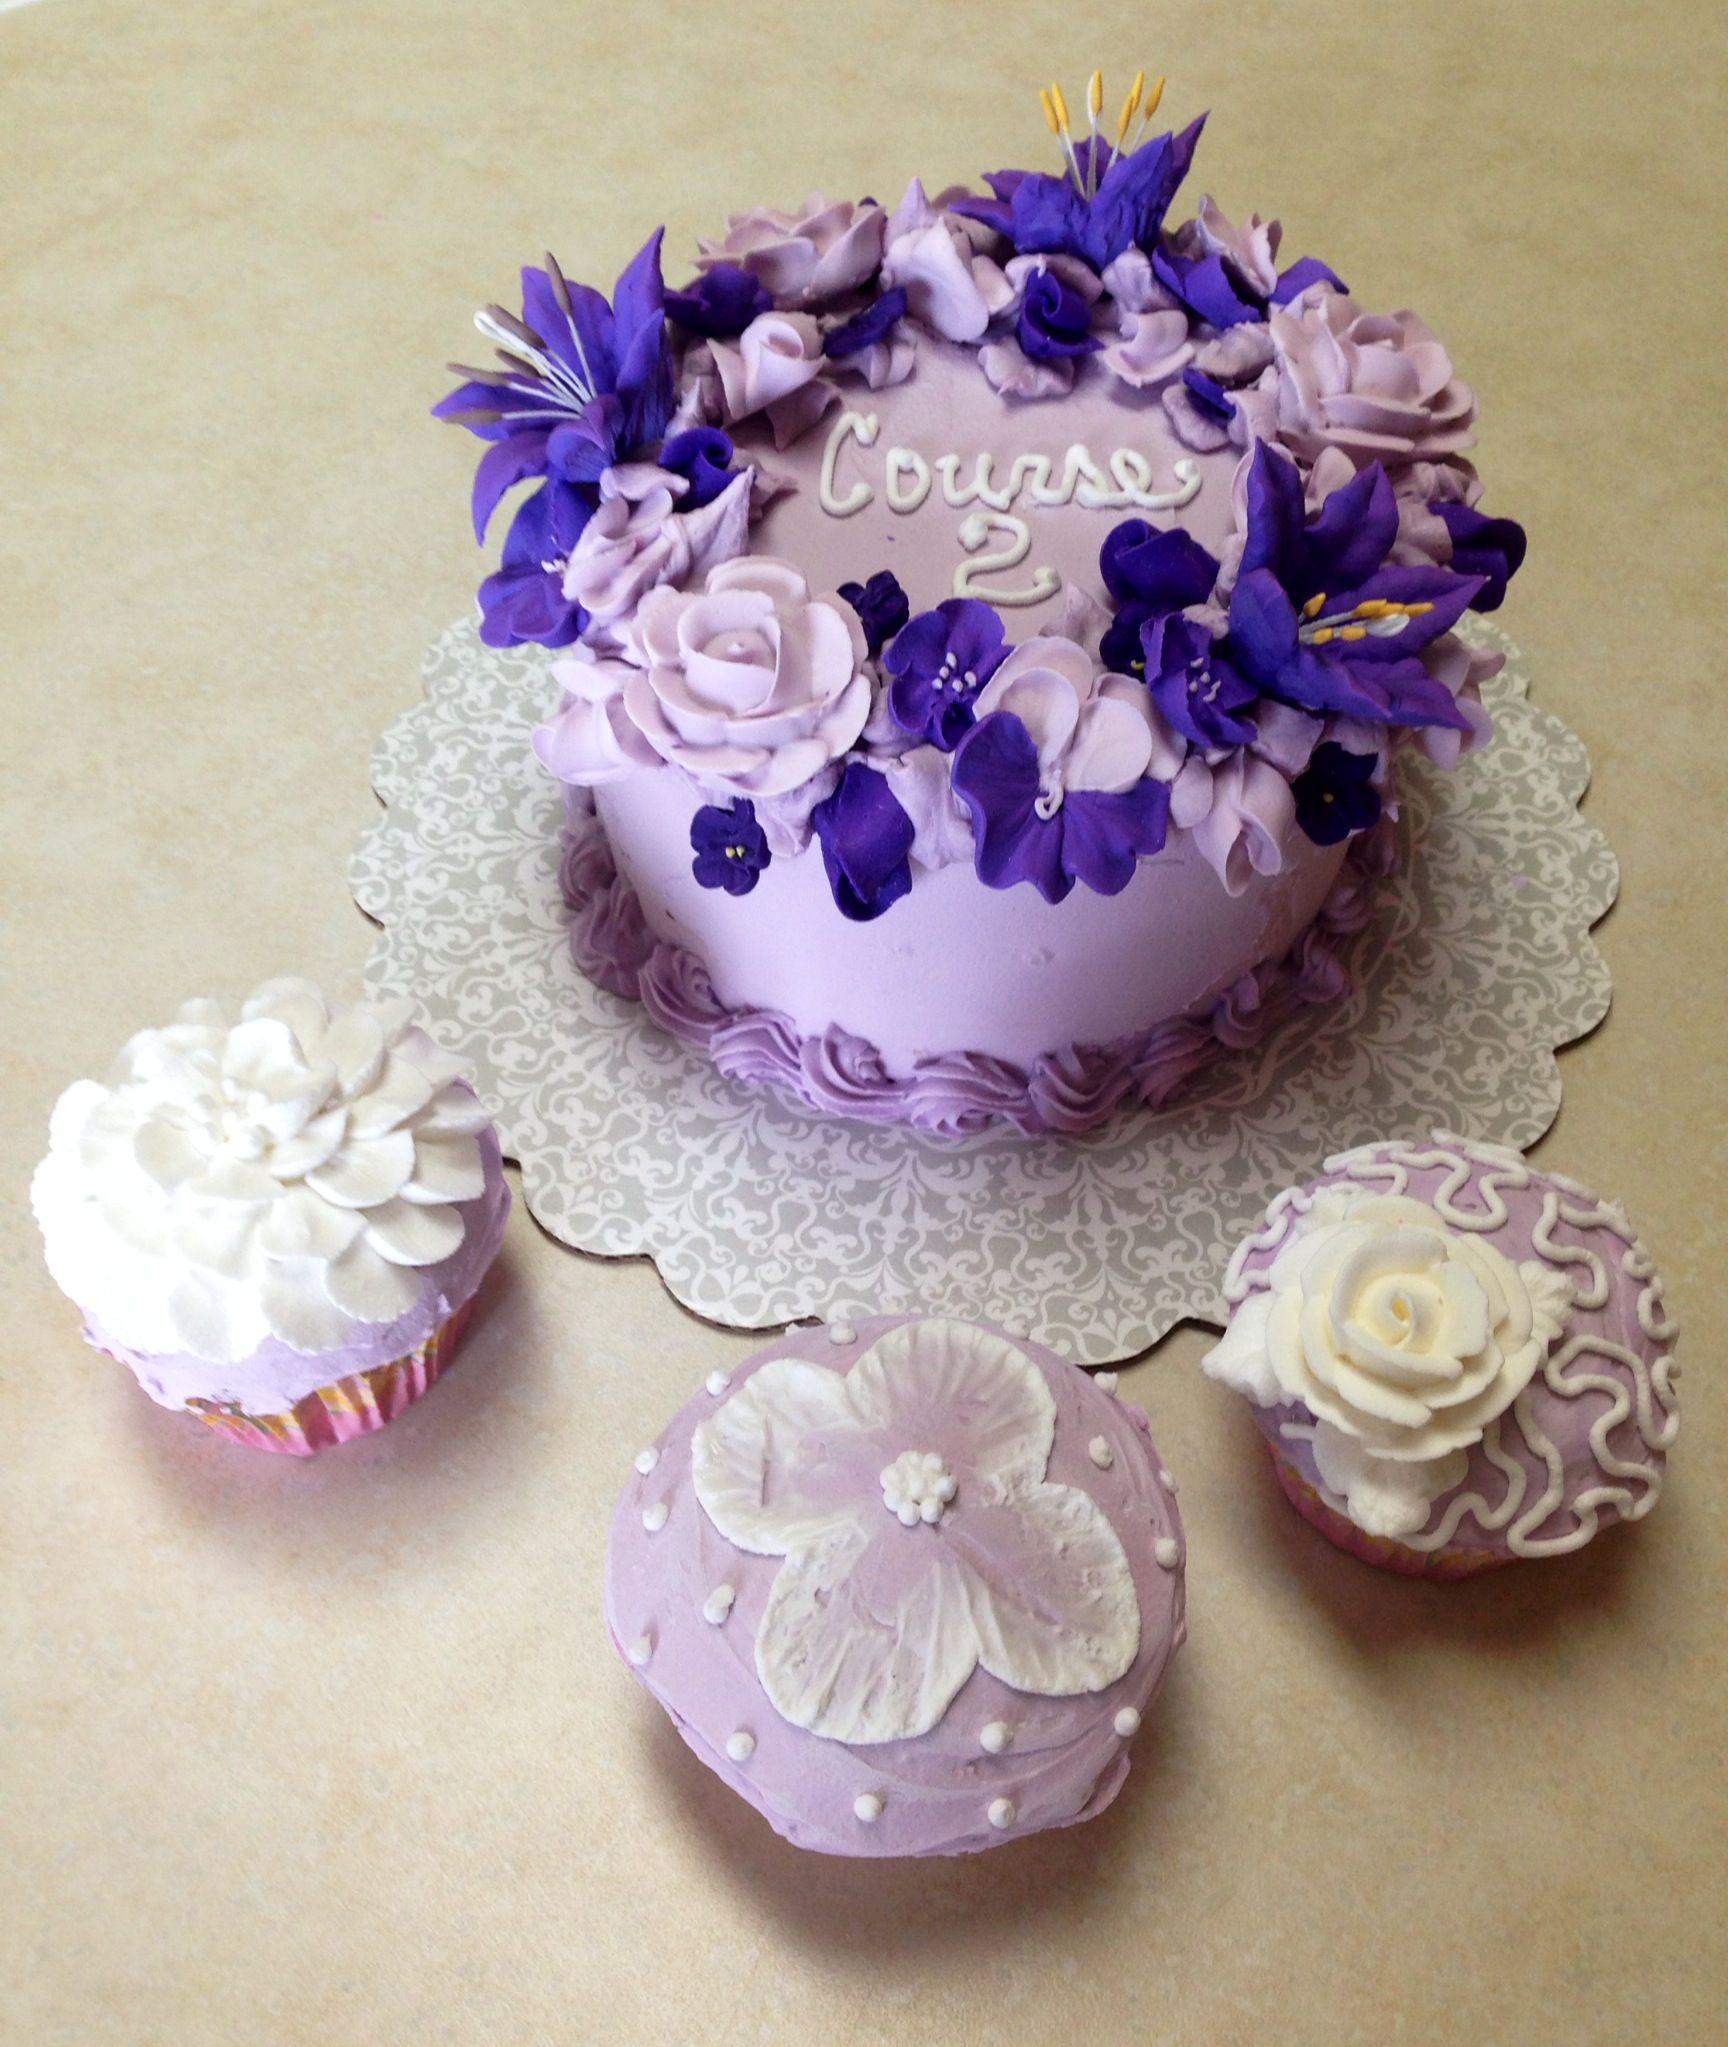 Wilton course 2 to dumpy cake by MB | Cake decorating ...